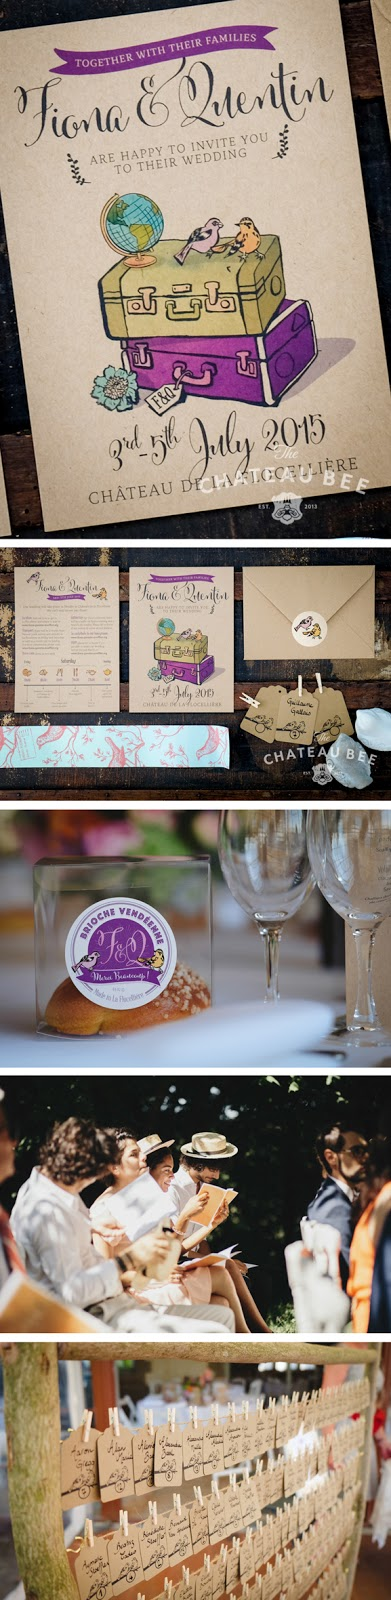 Wedding invites France